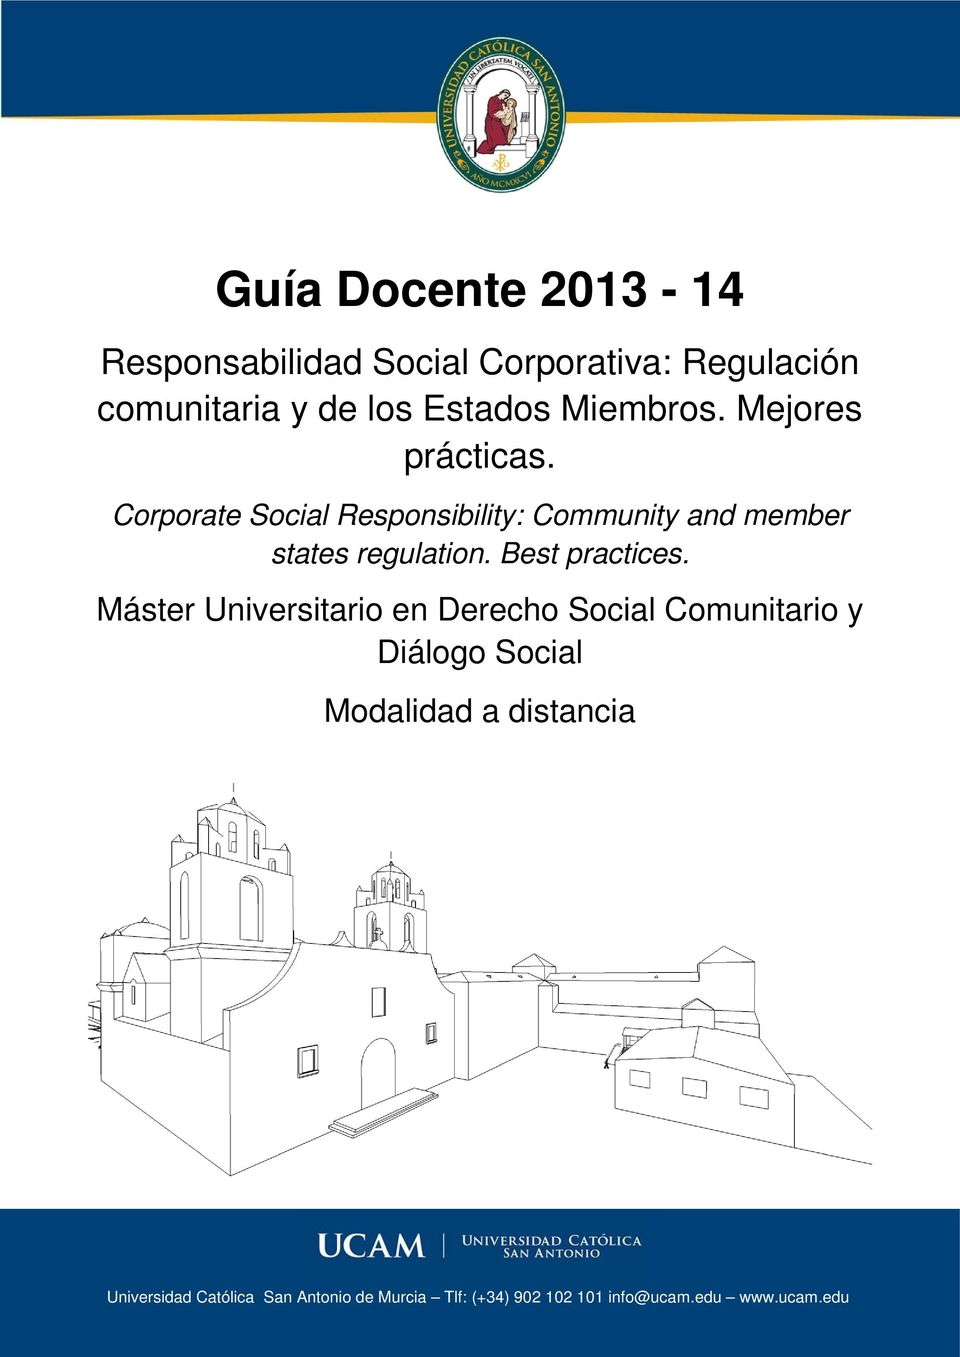 Corporate Social Responsibility: Community and member states regulation. Best practices.